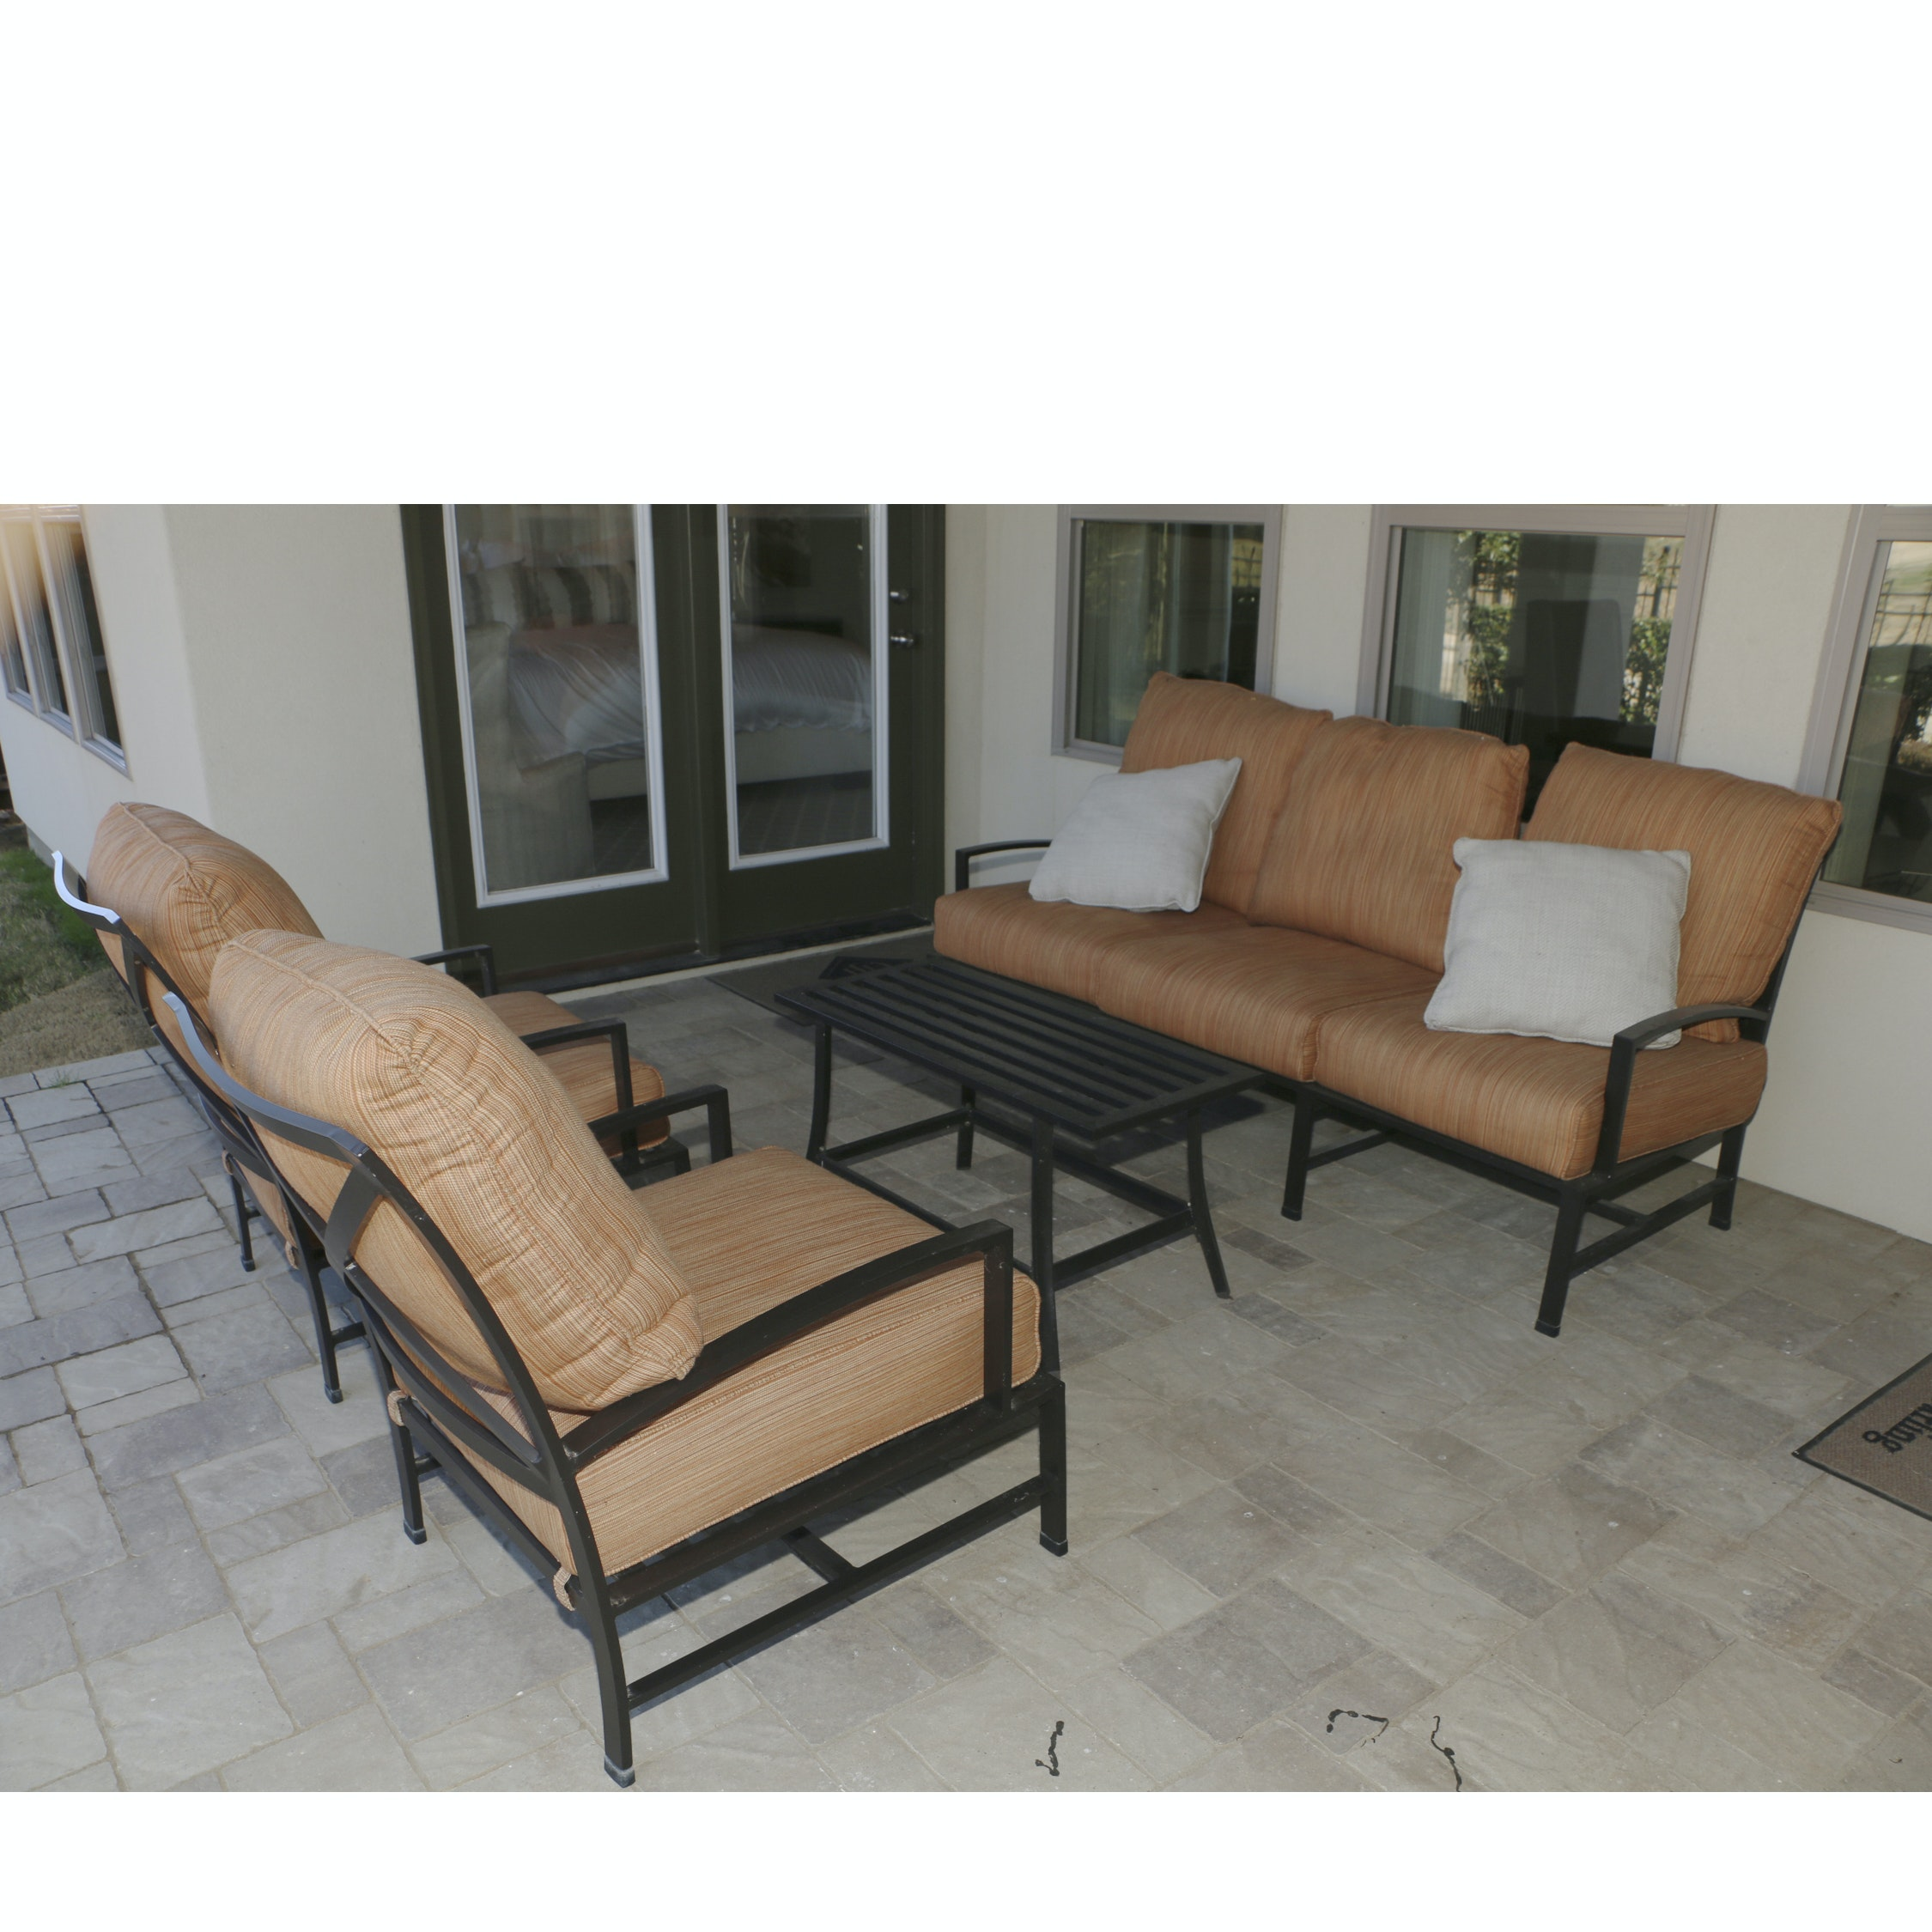 Metal Patio Sofa, Armchairs, and Table Set, 21st Century